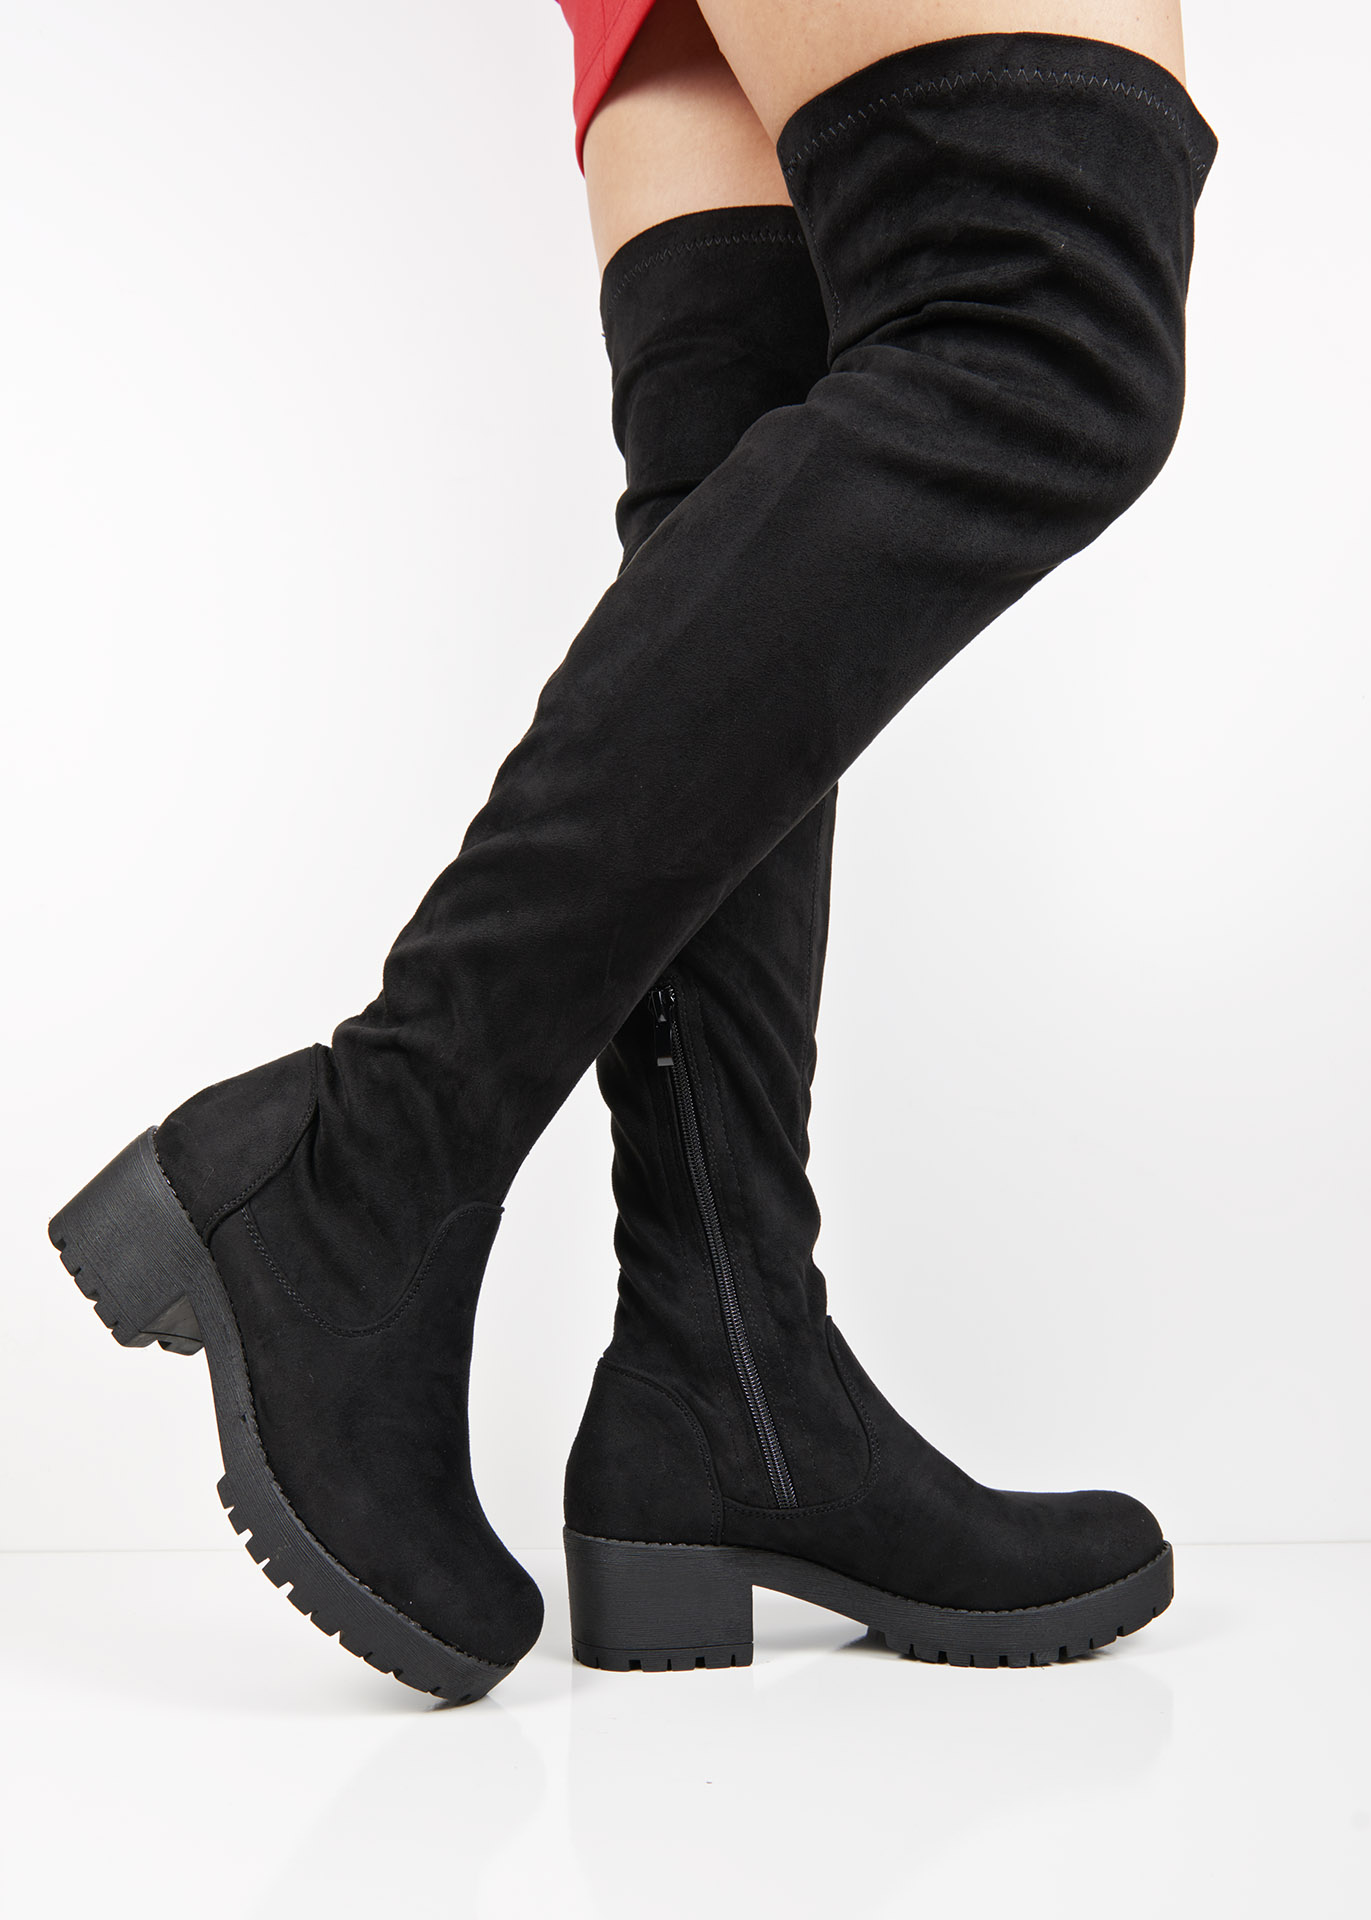 dfdfdeb1968 E4870 Black suede chunky sole over the knee boots